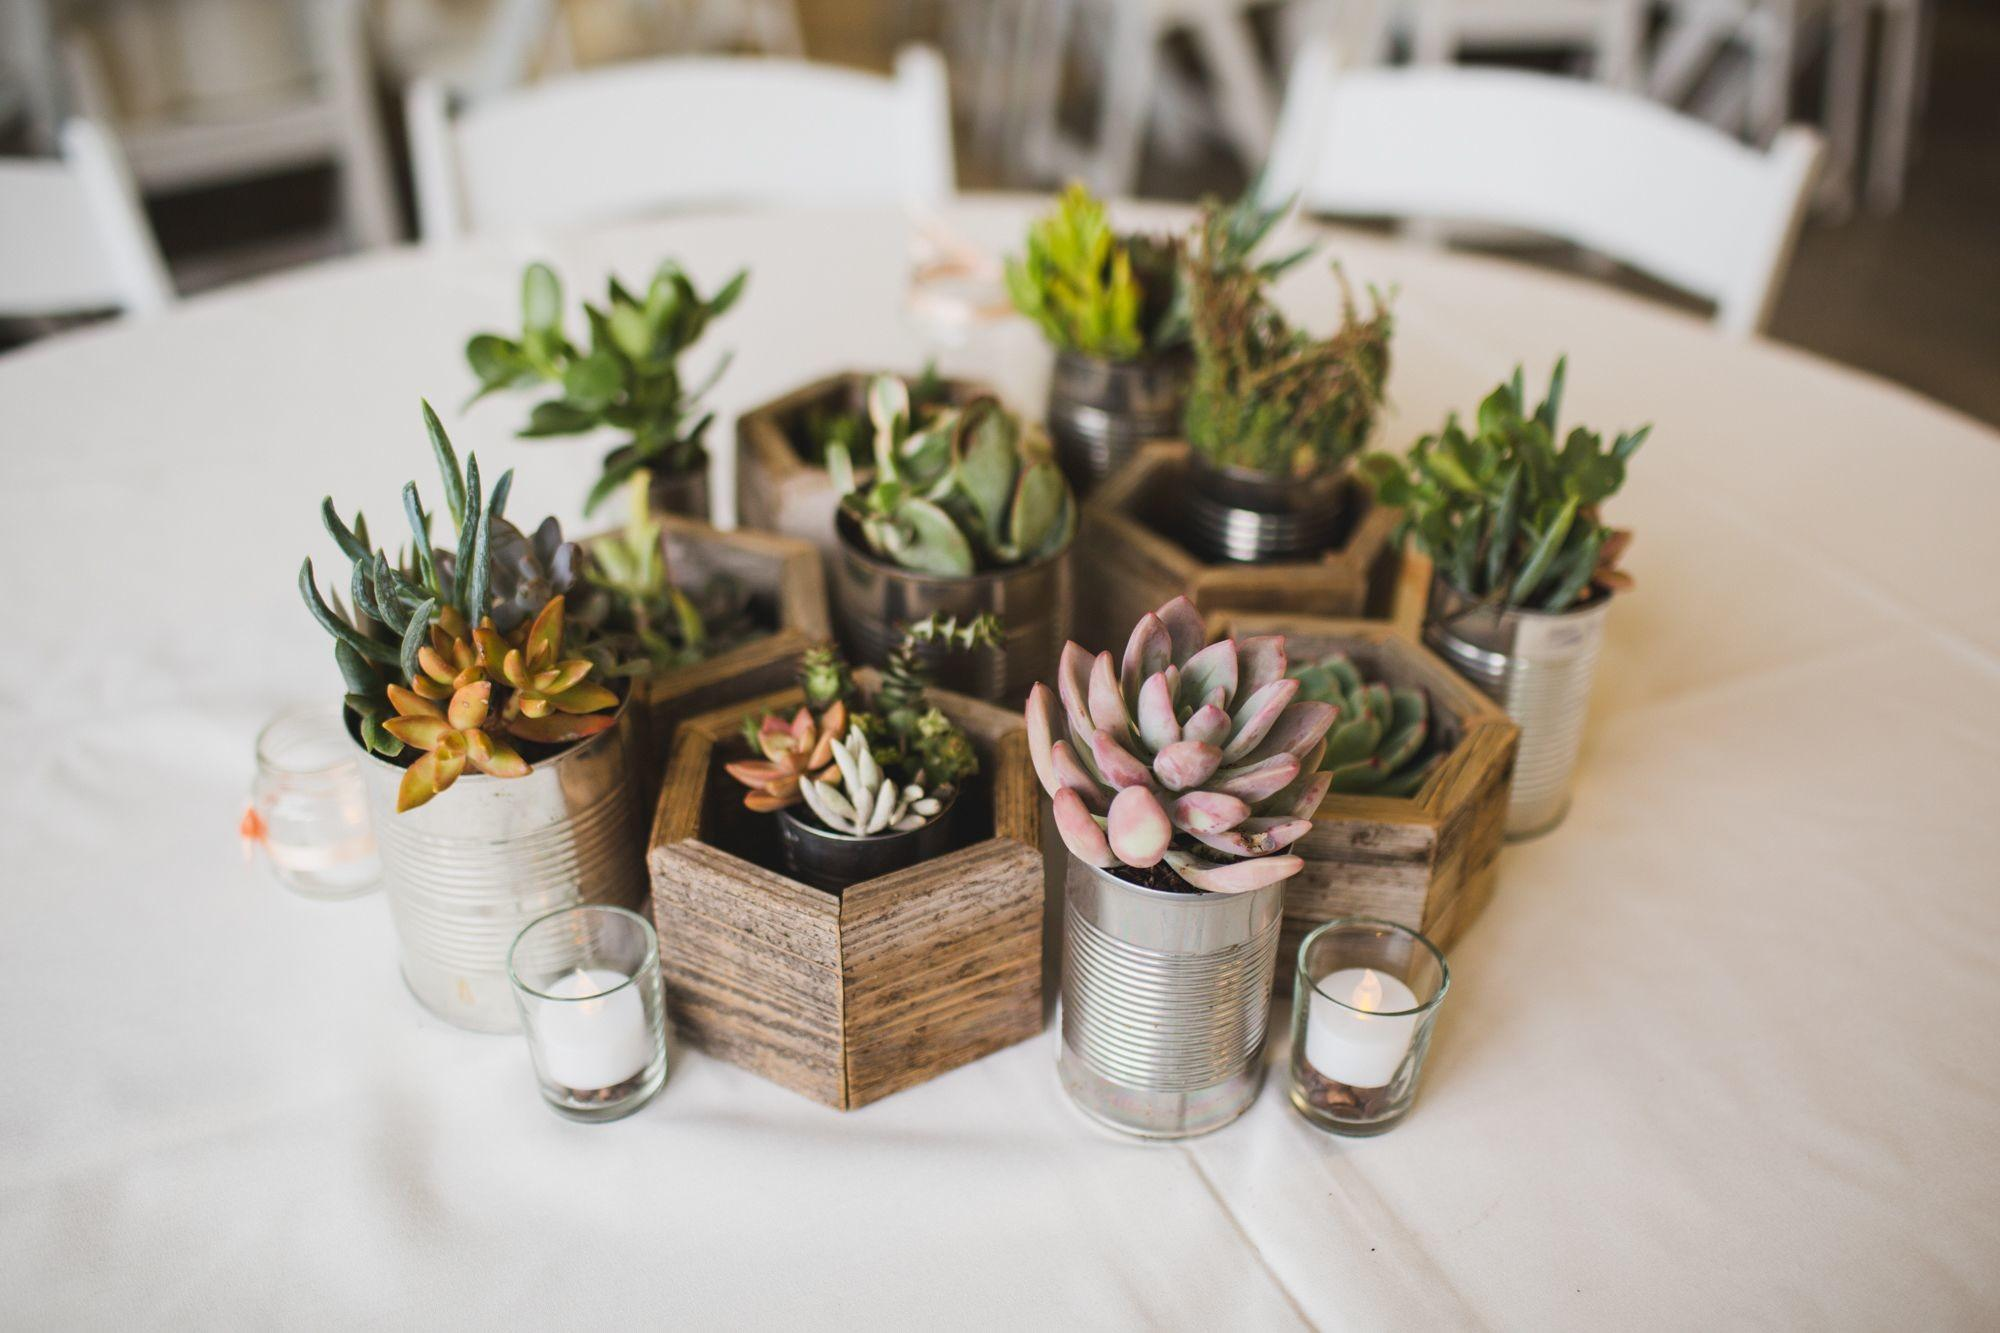 Diy Succulent Centerpieces Recycled Planters